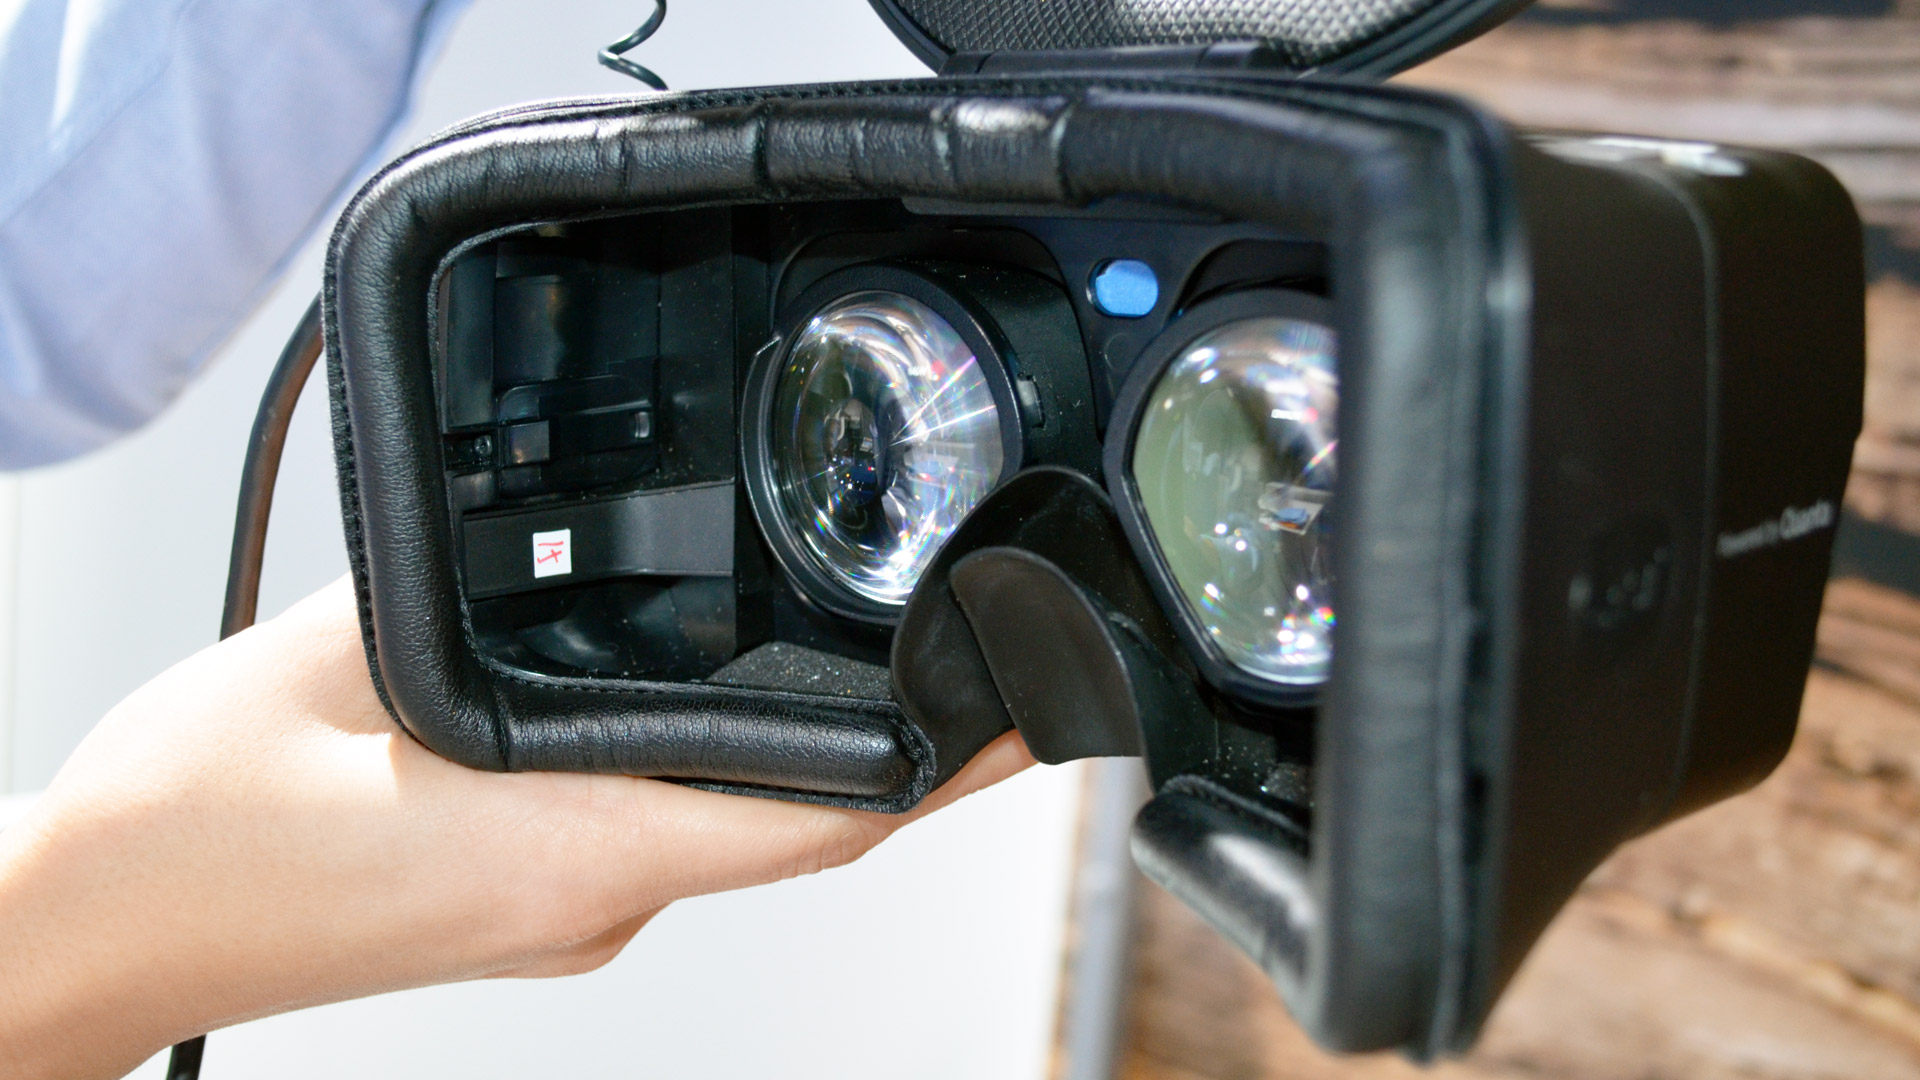 CES 2019: Qualcomm VR Reference Headset Has 2x Pixels of